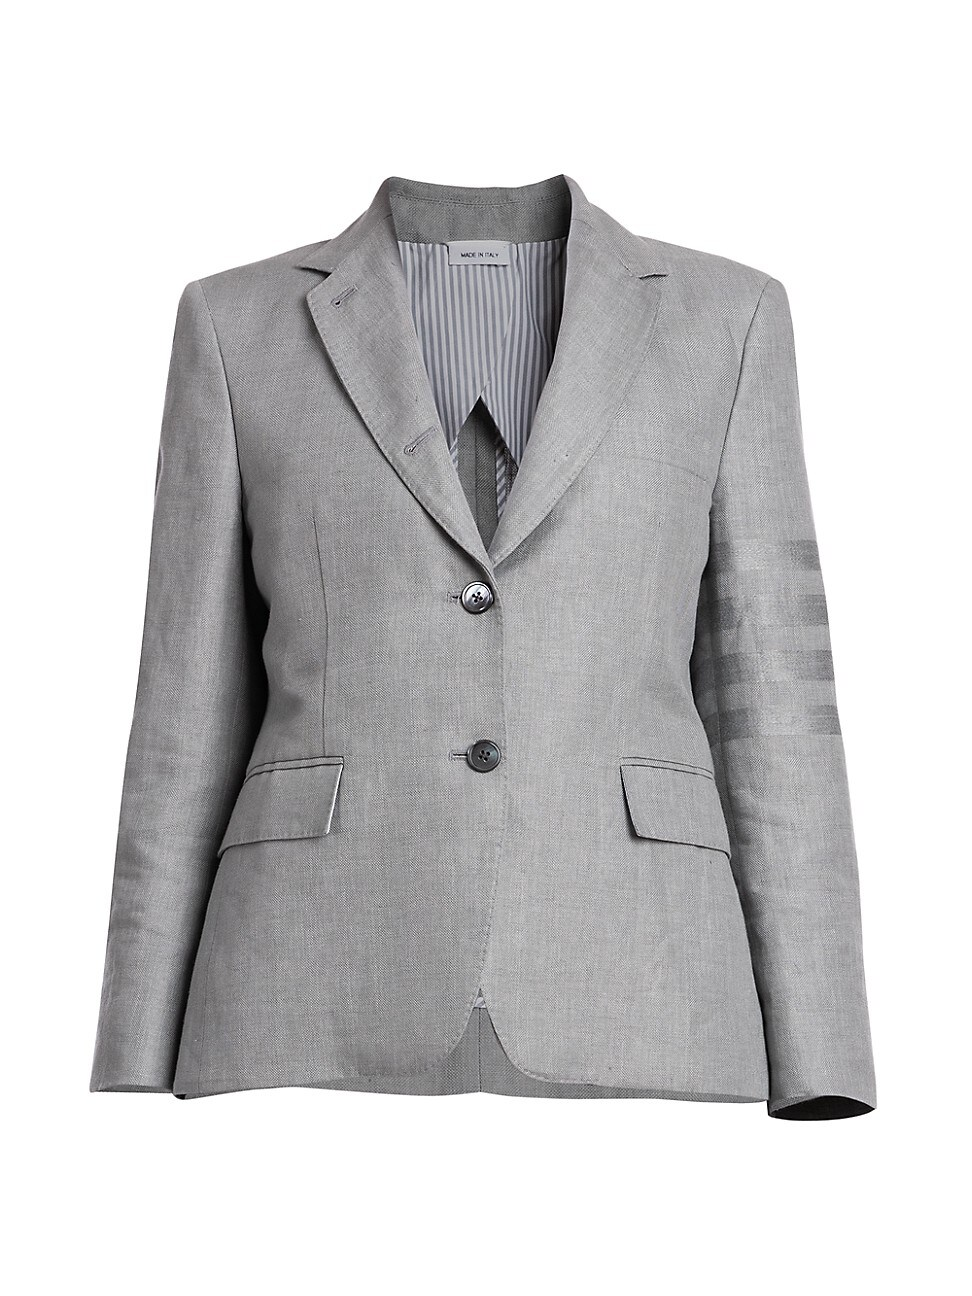 Thom Browne WOMEN'S CLASSIC 4 BAR LINEN SINGLE-BREASTED SPORTCOAT